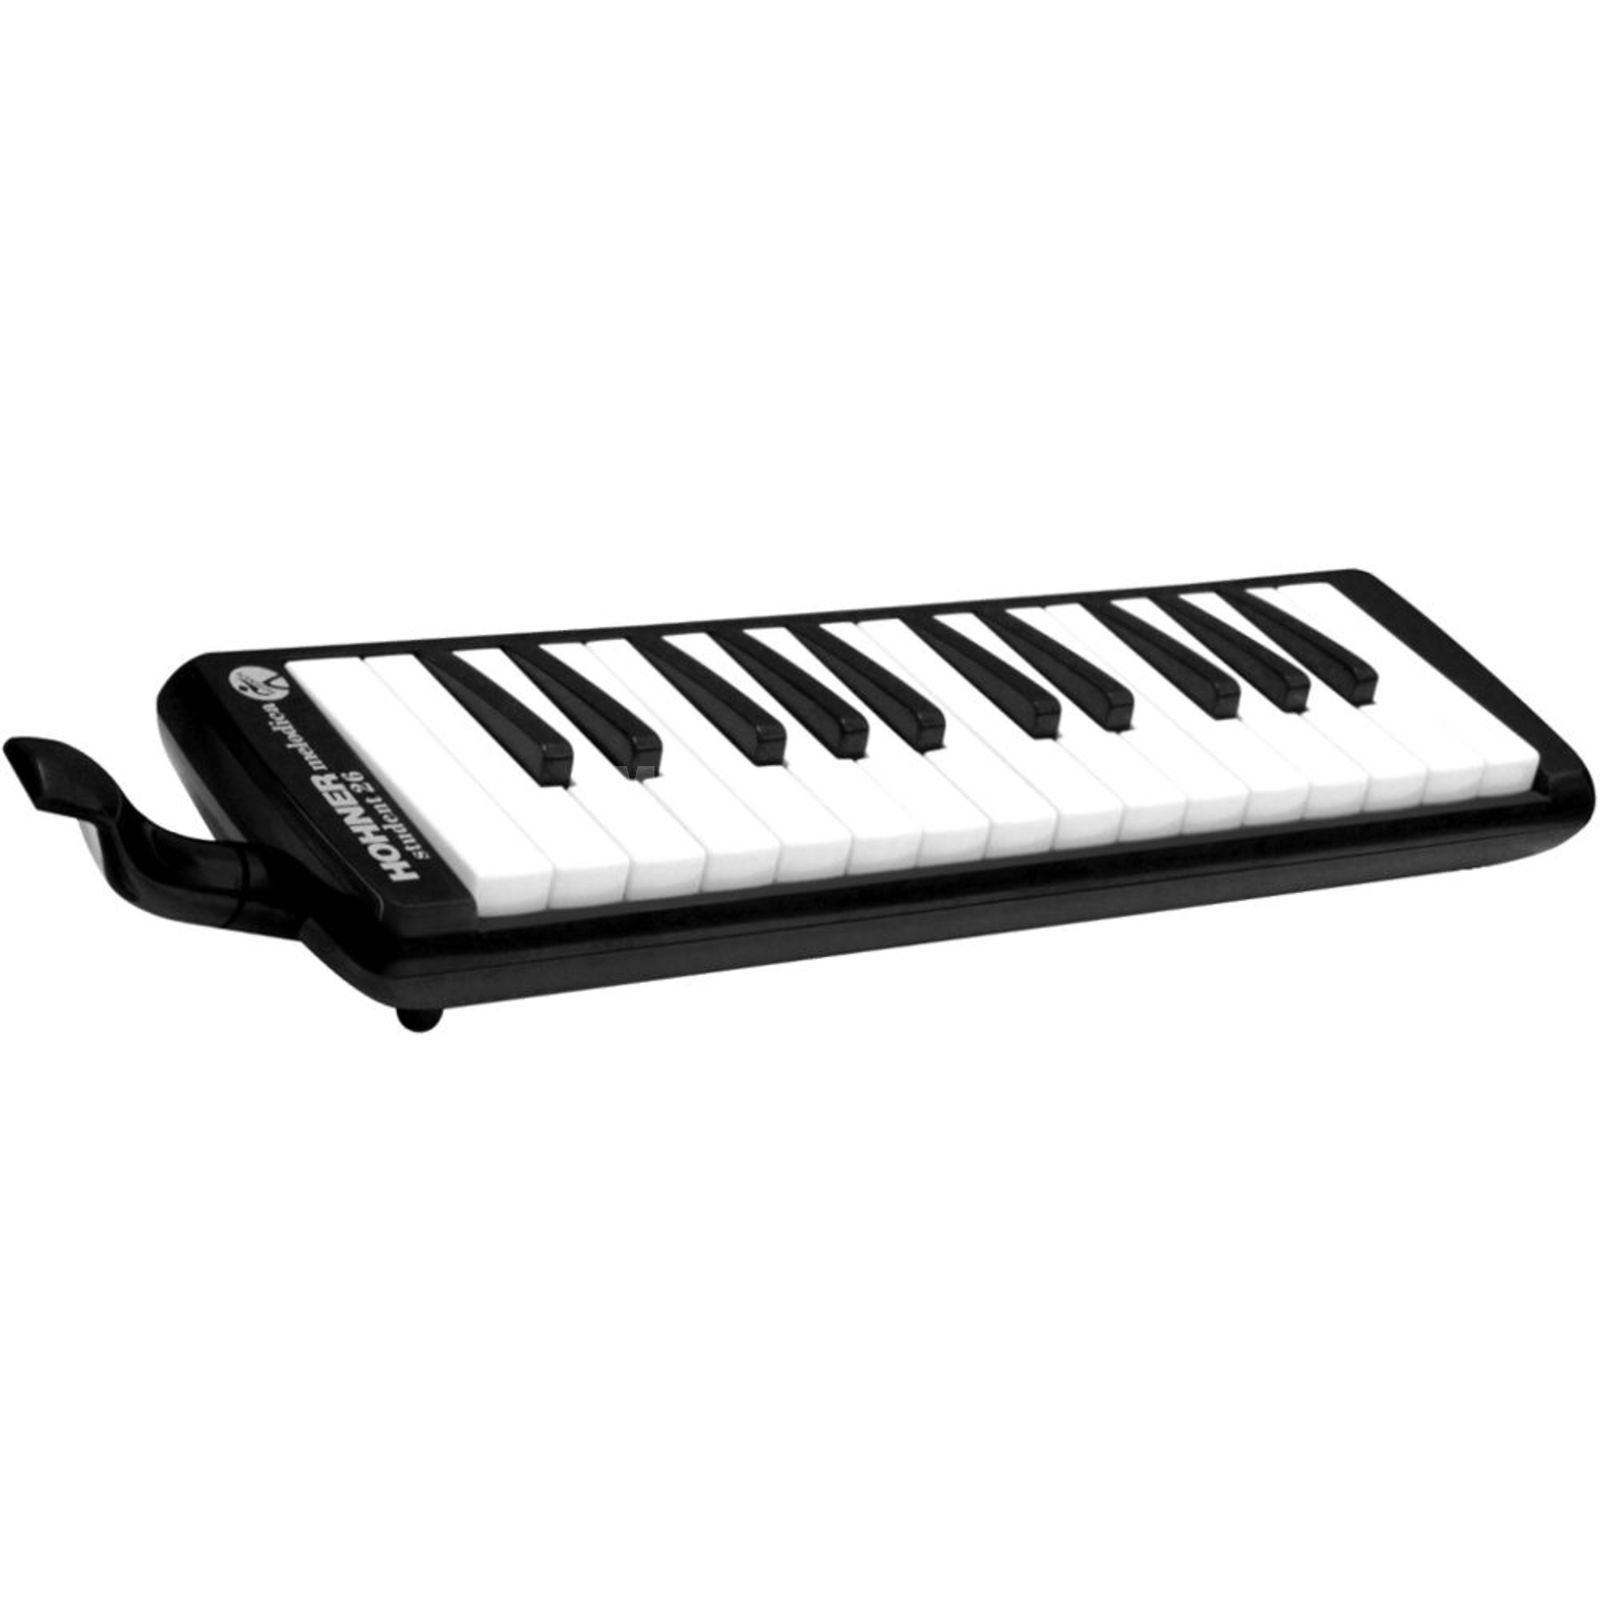 Hohner Student Melodica 26 - Black incl. Bag and Accessories Изображение товара